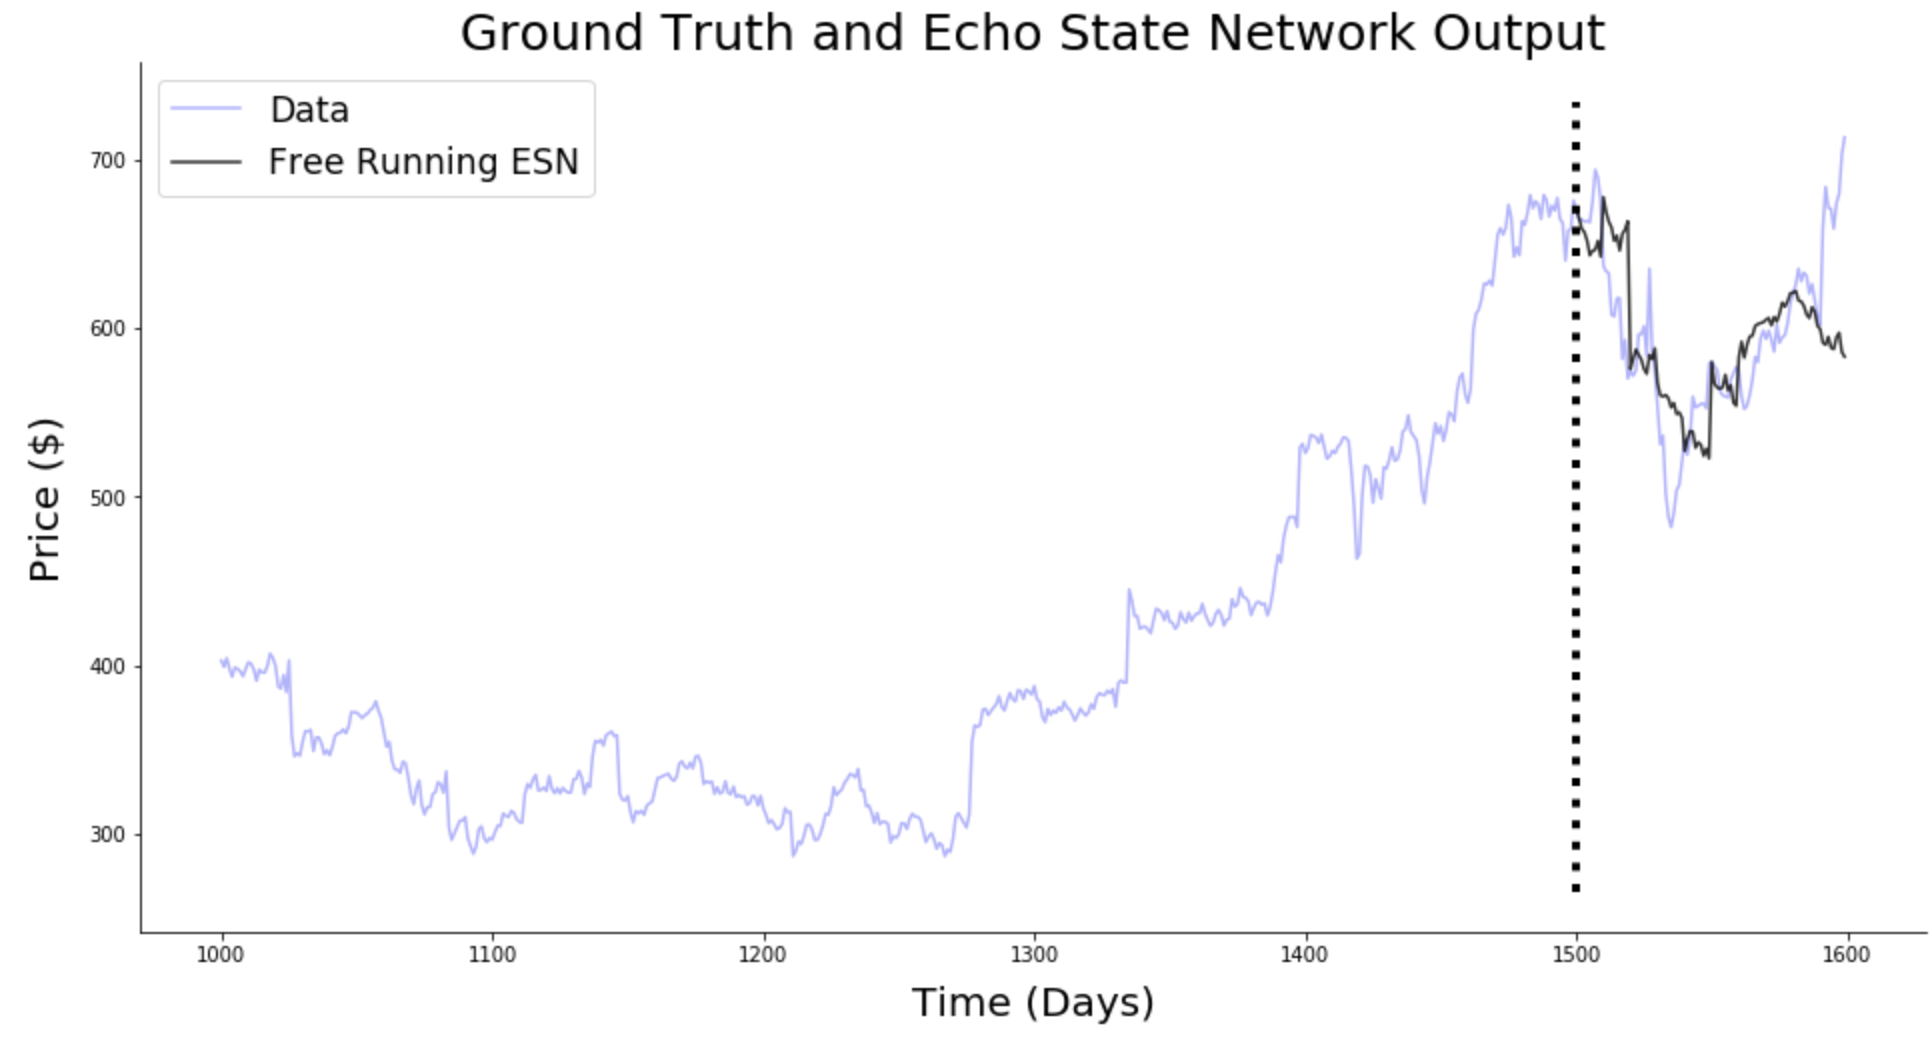 Predicting Stock Prices with Echo State Networks - Towards